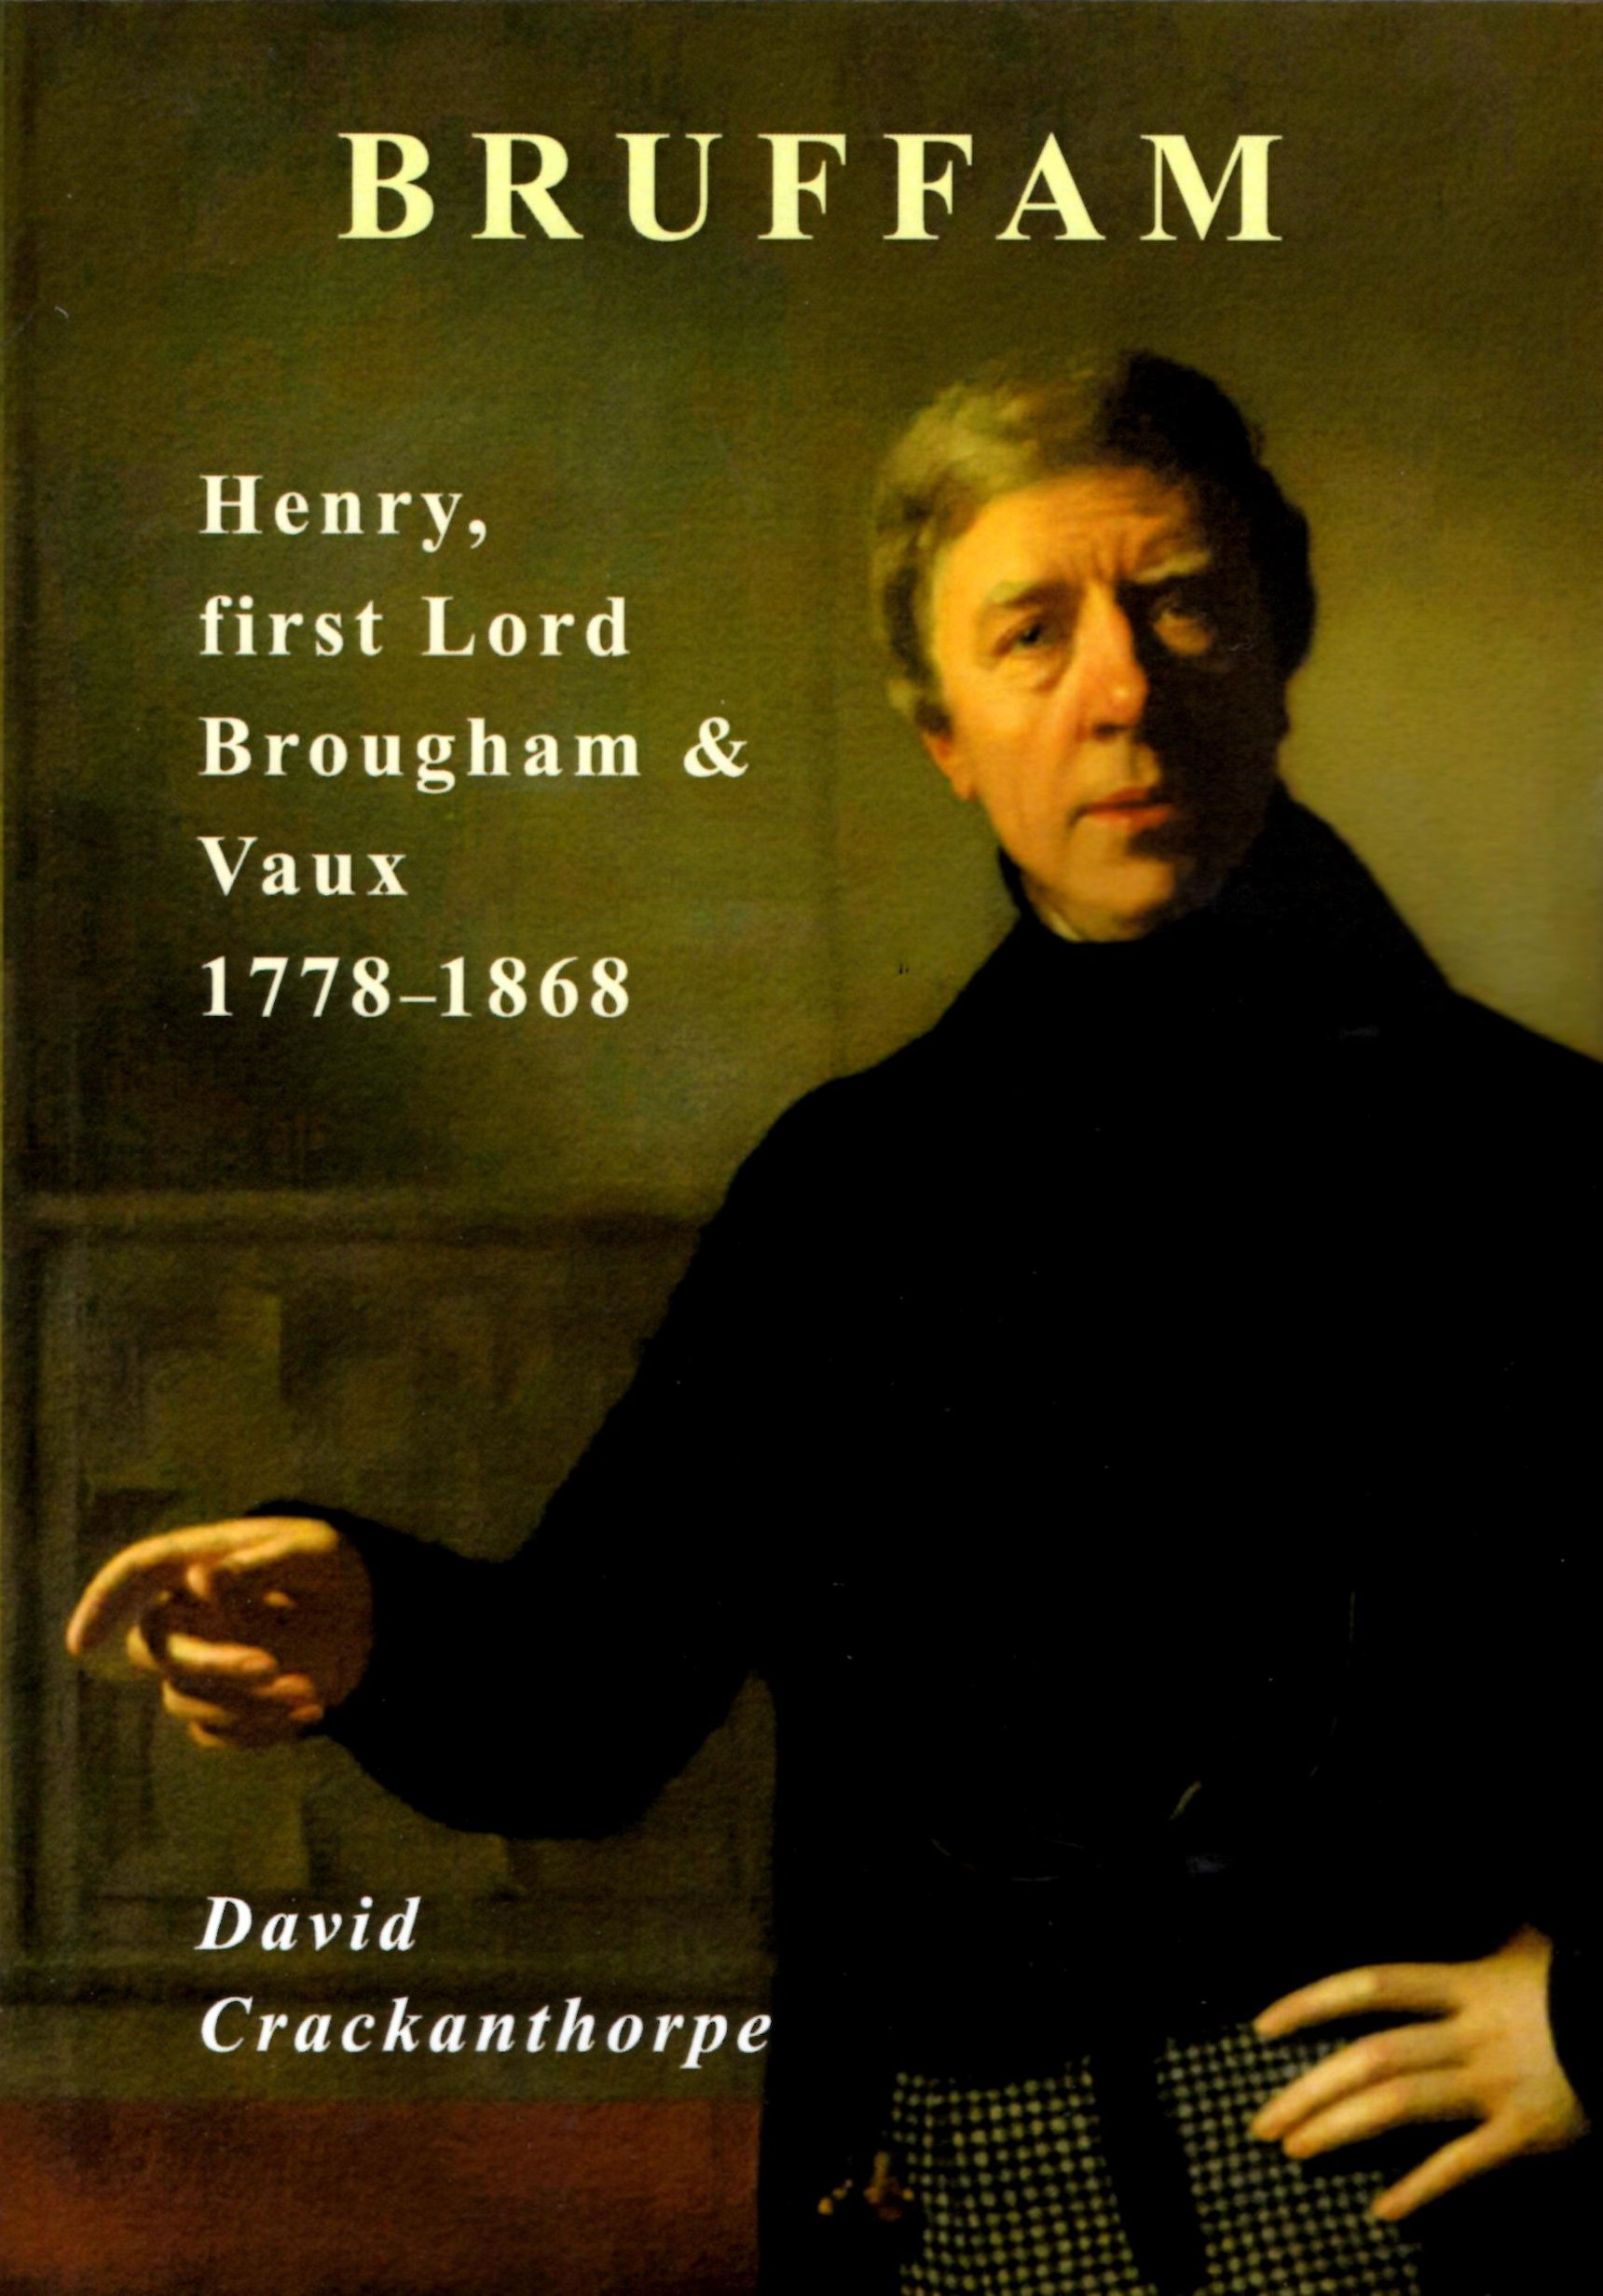 Bruffam: Henry, first Lord Brougham & Vaux 1778 - 1868